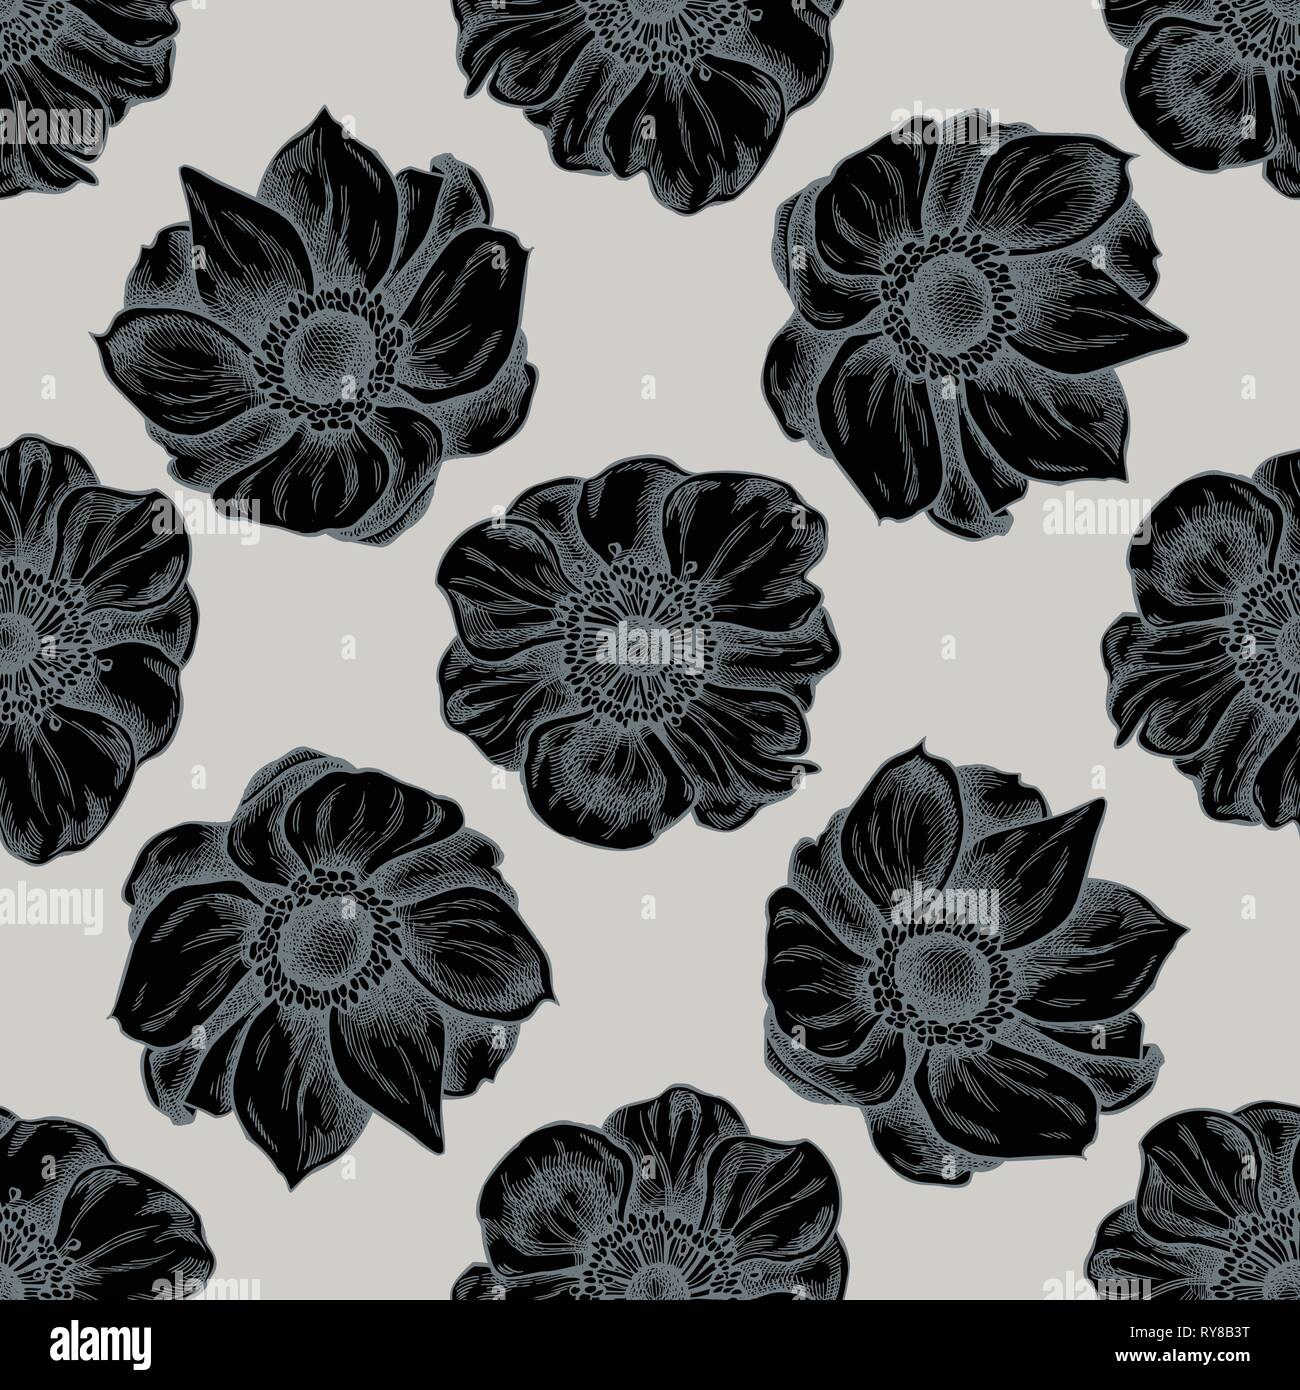 Seamless pattern with hand drawn stylized anemone - Stock Vector